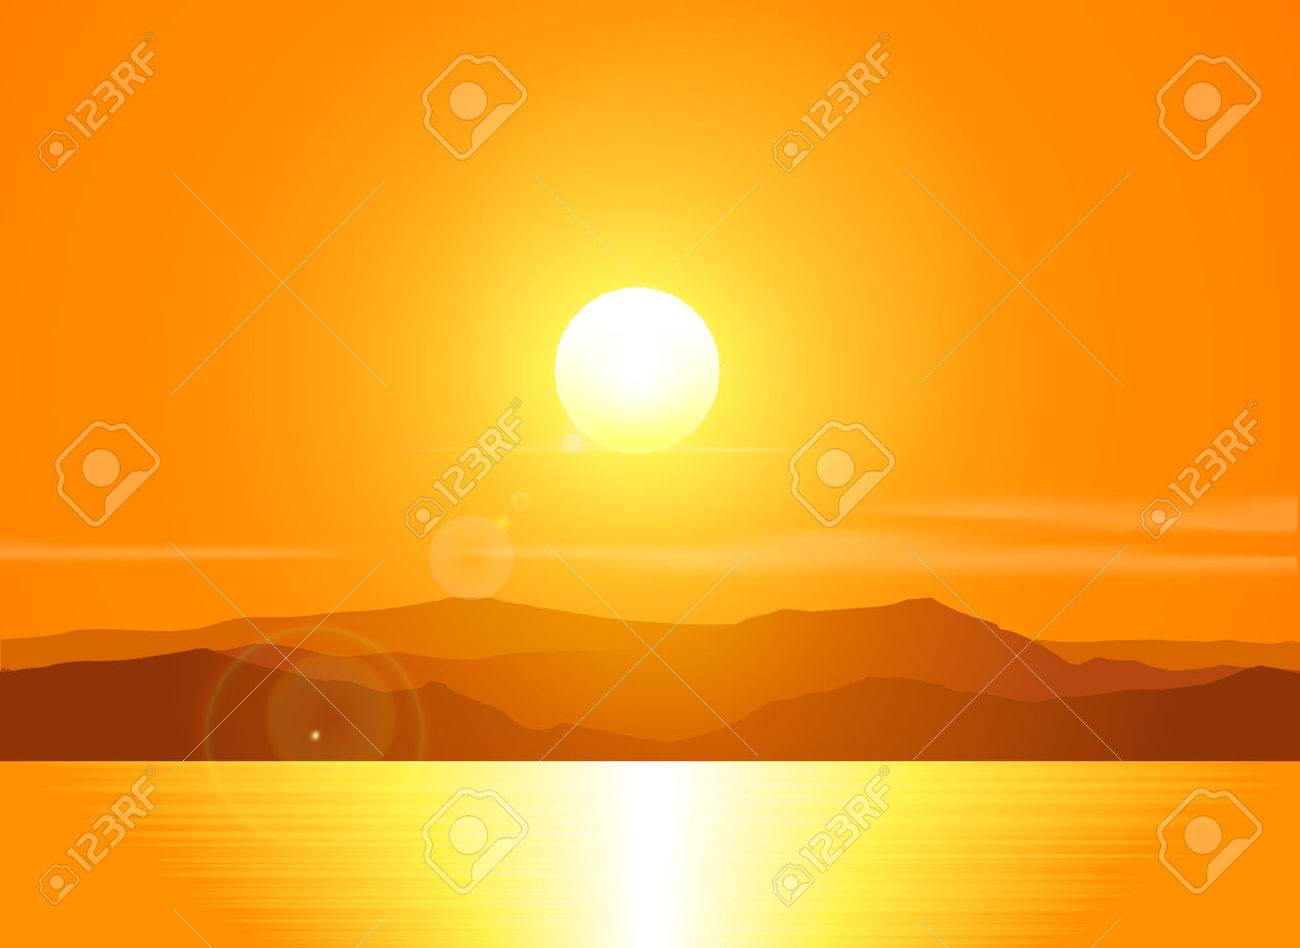 Landscape with sunset at the seashore over mountain range. Vector illustration. - 39250275